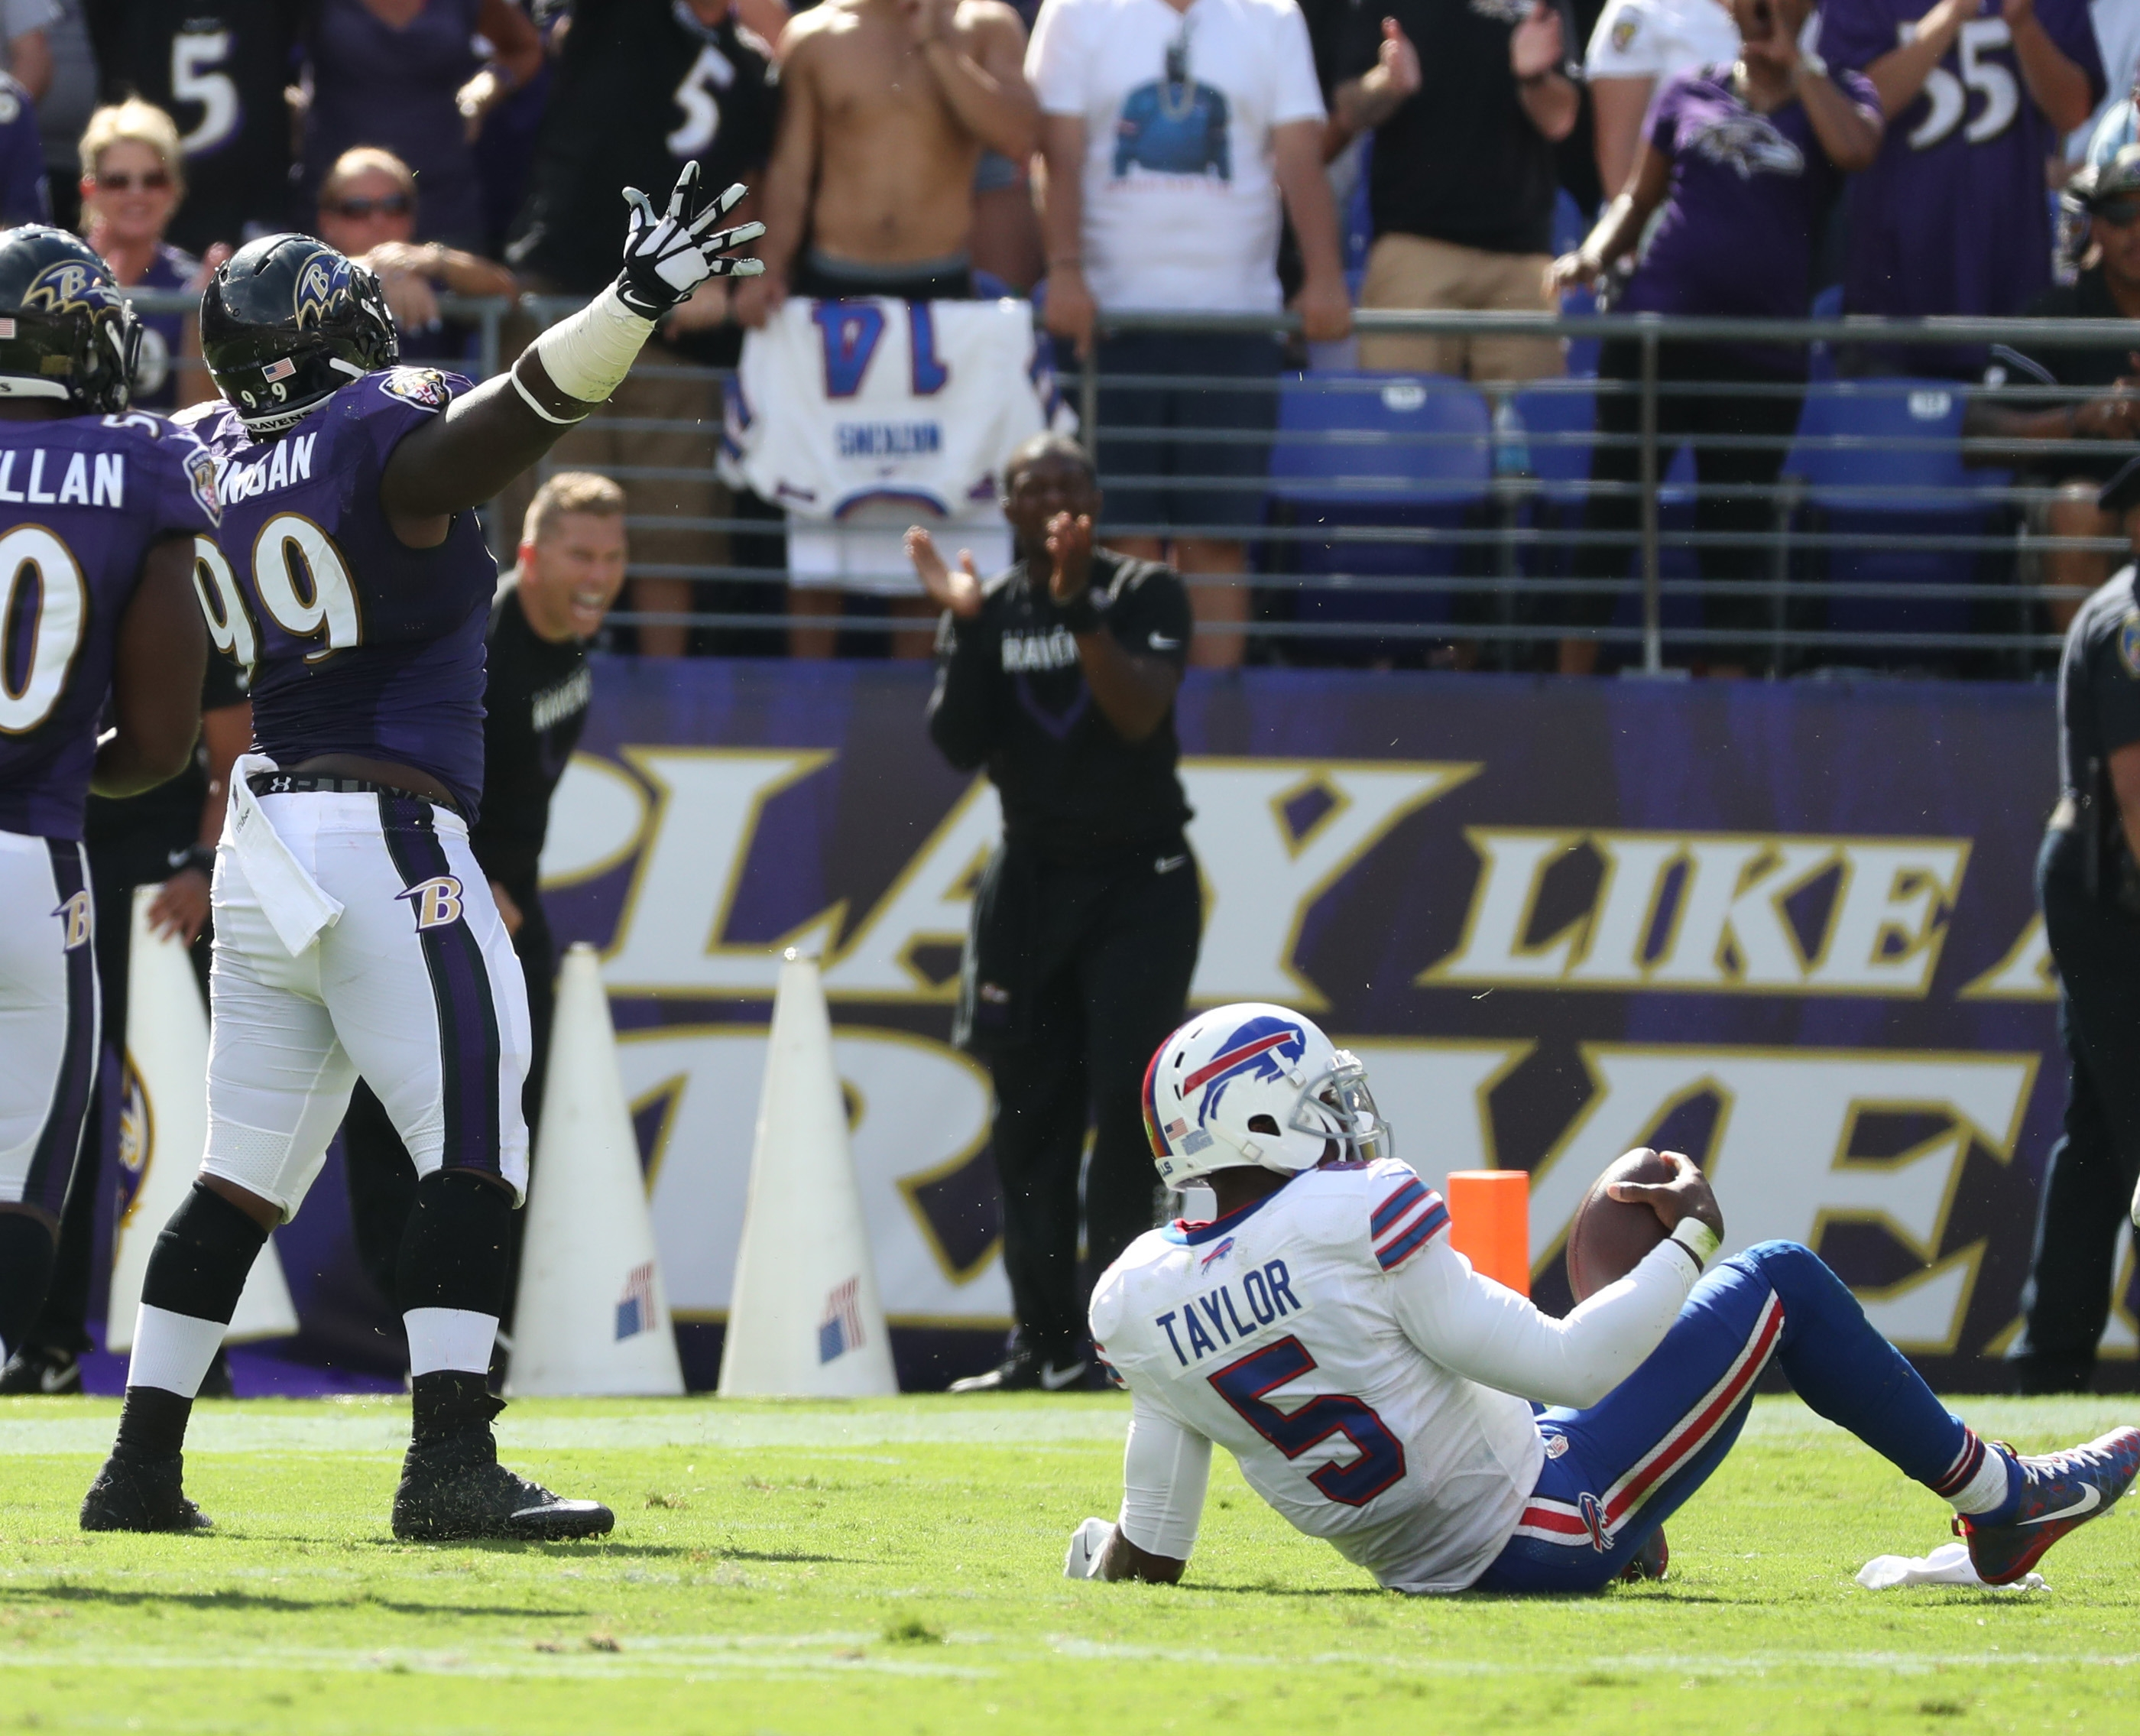 Bills quarterback Tyrod Taylor is sacked by Ravens defensive end Timmy Jernigan in the fourth quarter. A game that was going to resume the elevation of Taylor as a franchise quarterback, says Jerry Sullivan, was his worst game in the NFL.